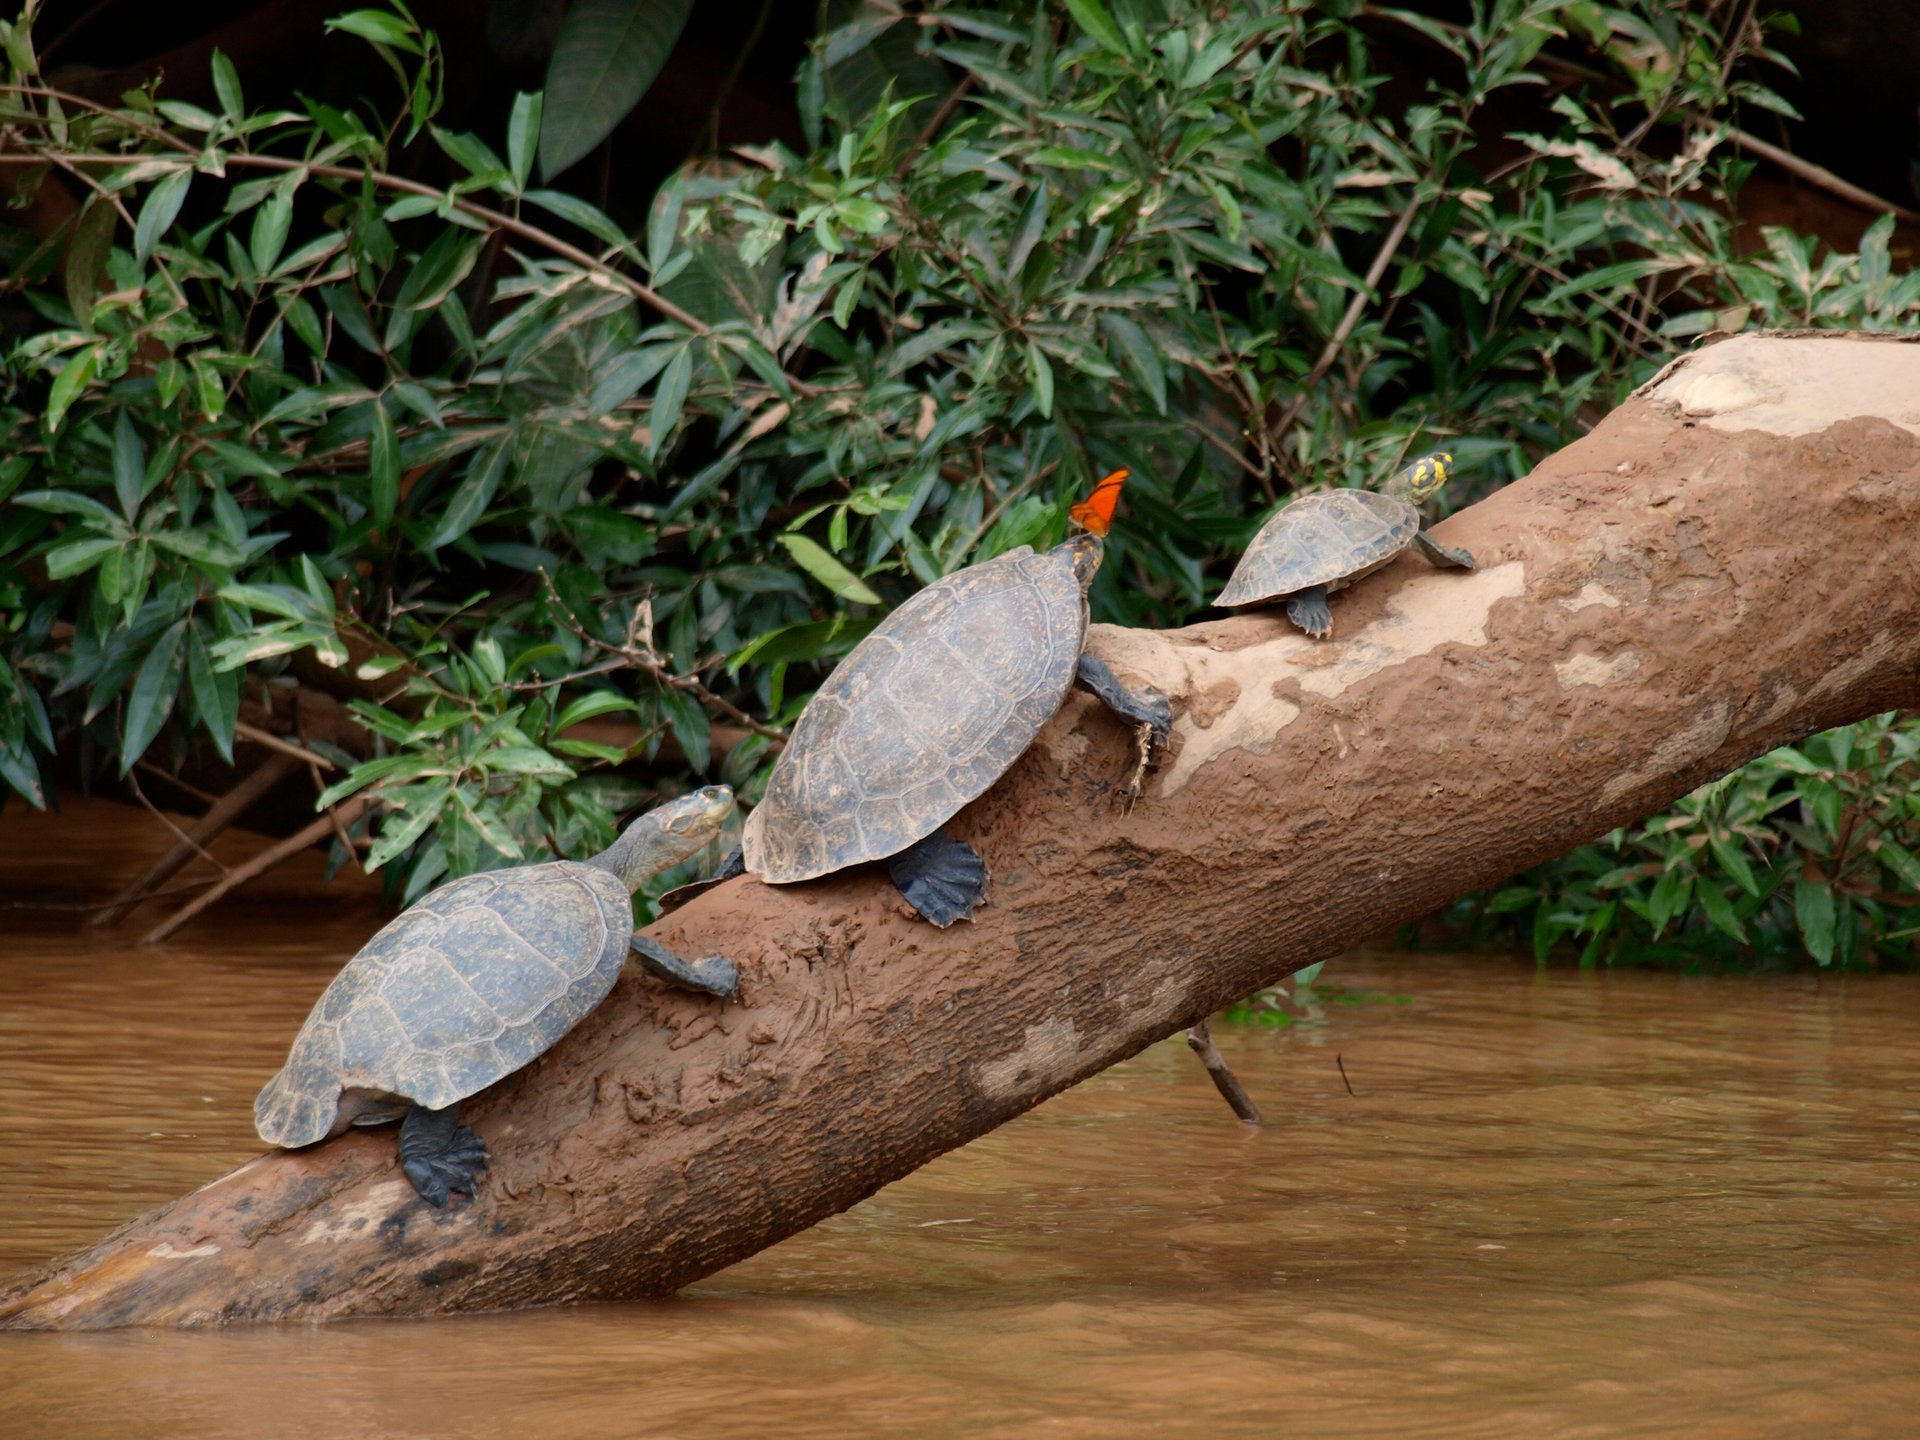 Butterflies Drinking Turtle Tears in Peru - Best Season 2020